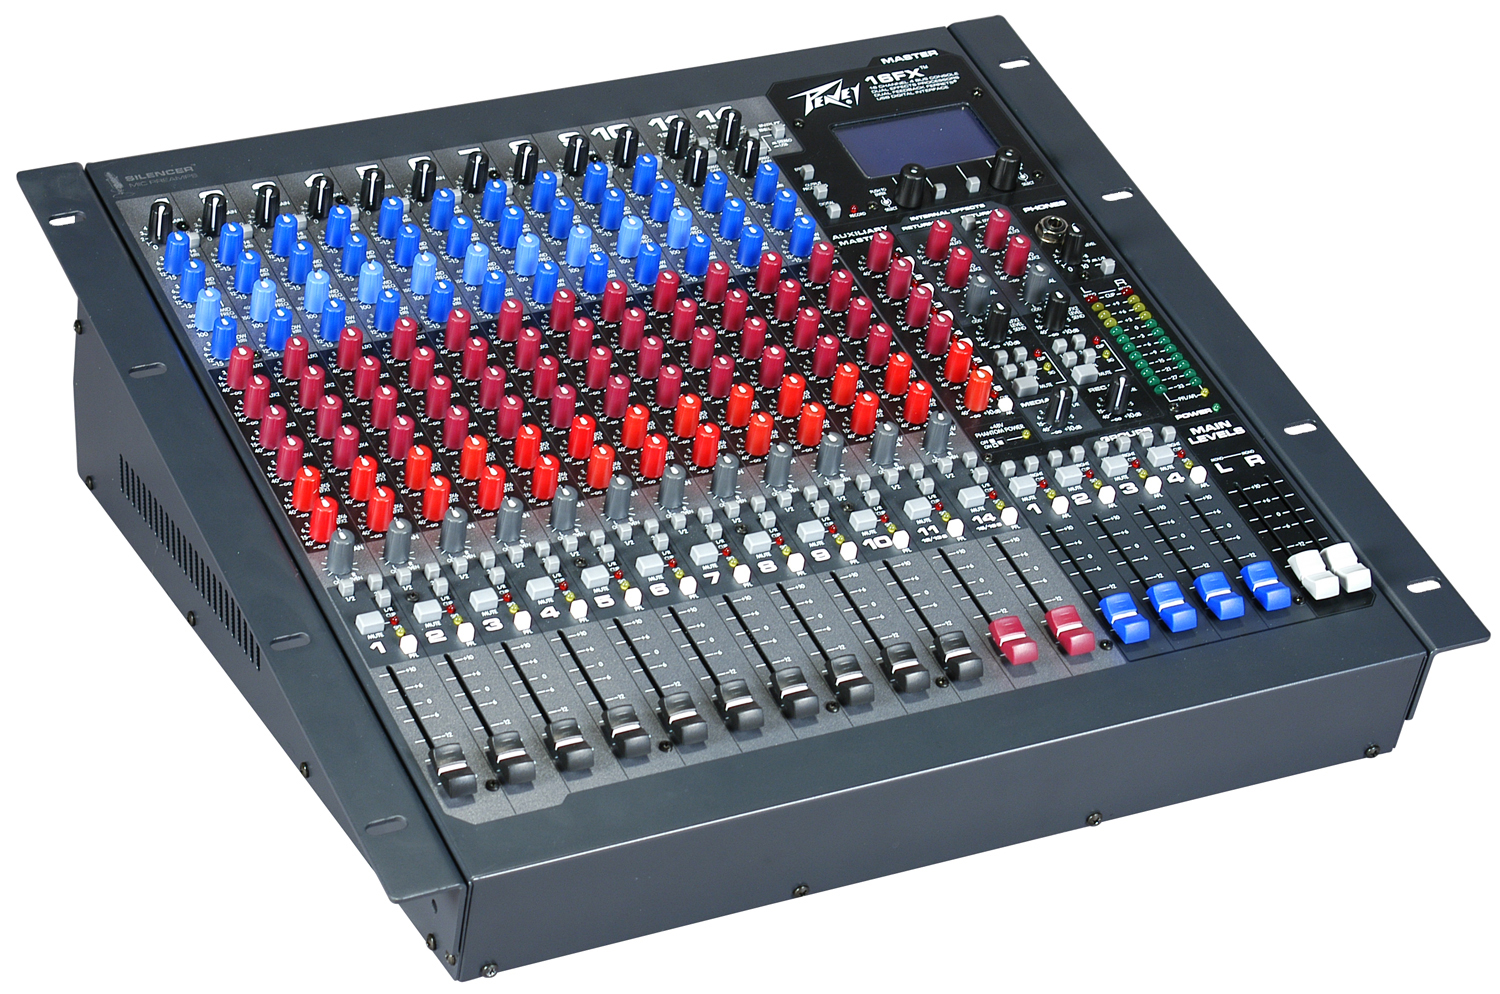 peavey 16fx 2 stereo channel mixer with mid frequency sweepable 3 band equalizer pev13 512400. Black Bedroom Furniture Sets. Home Design Ideas